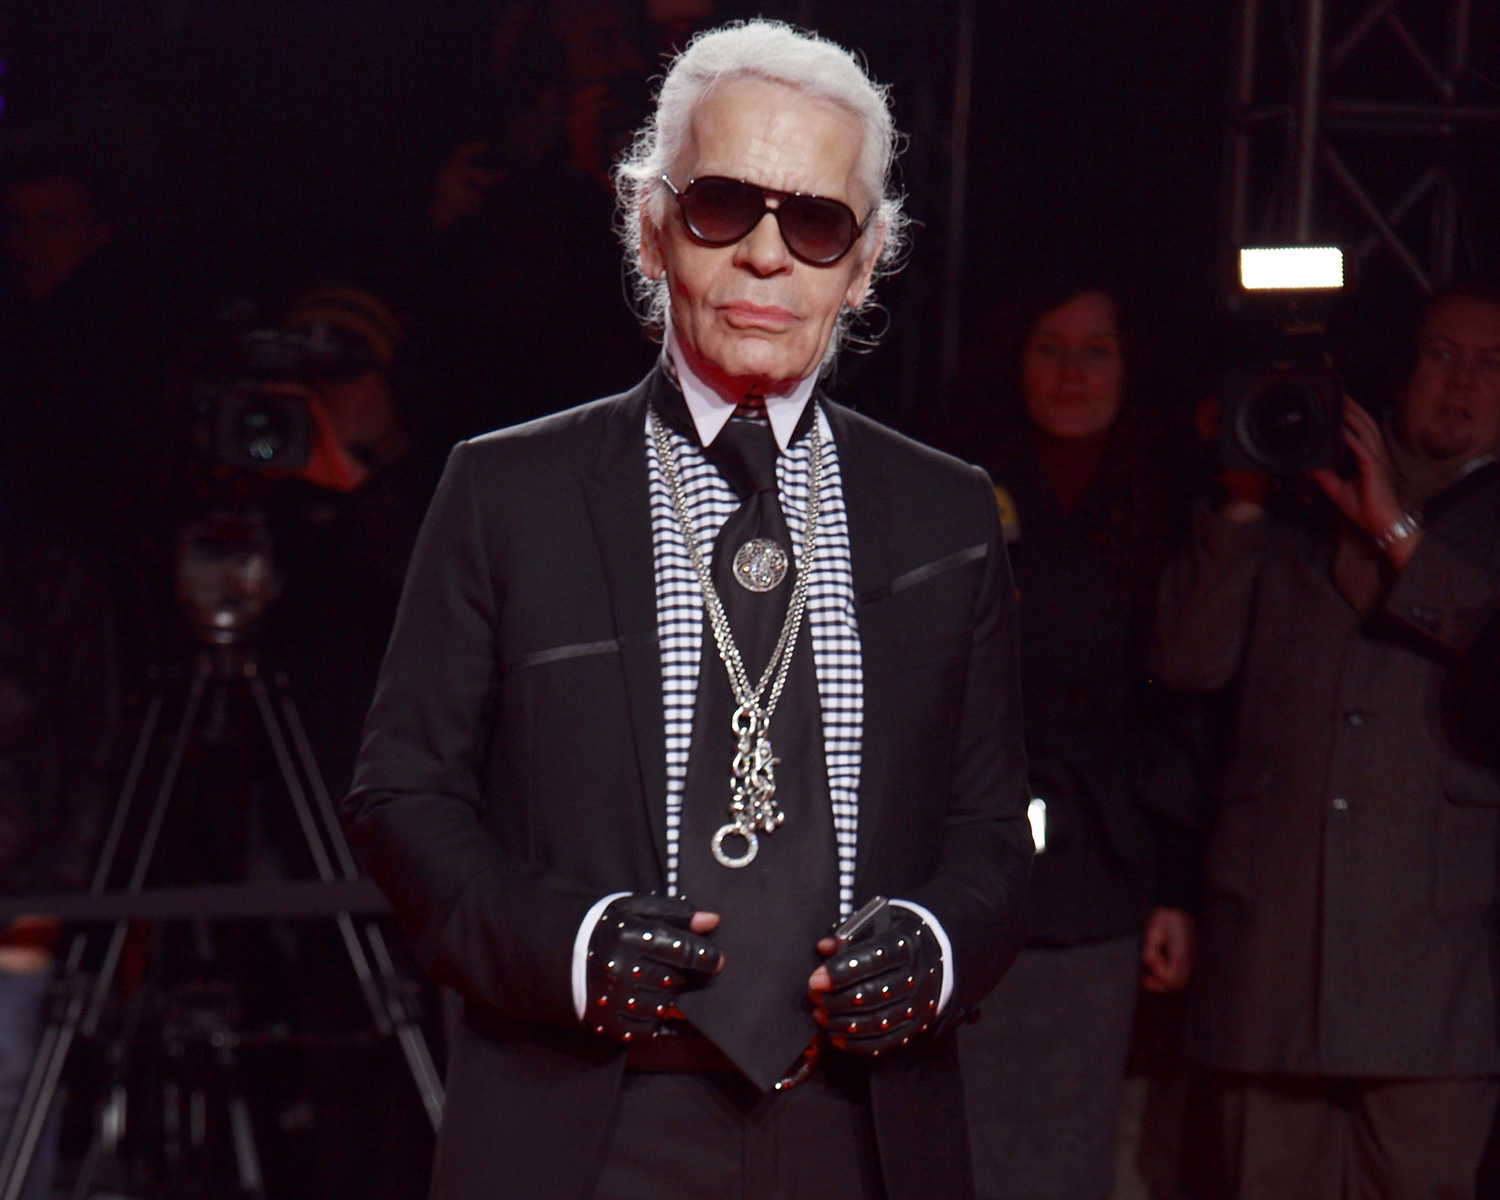 Karl Lagerfeld Dies: See the Chanel Haute Couture Wedding Dresses He Designed